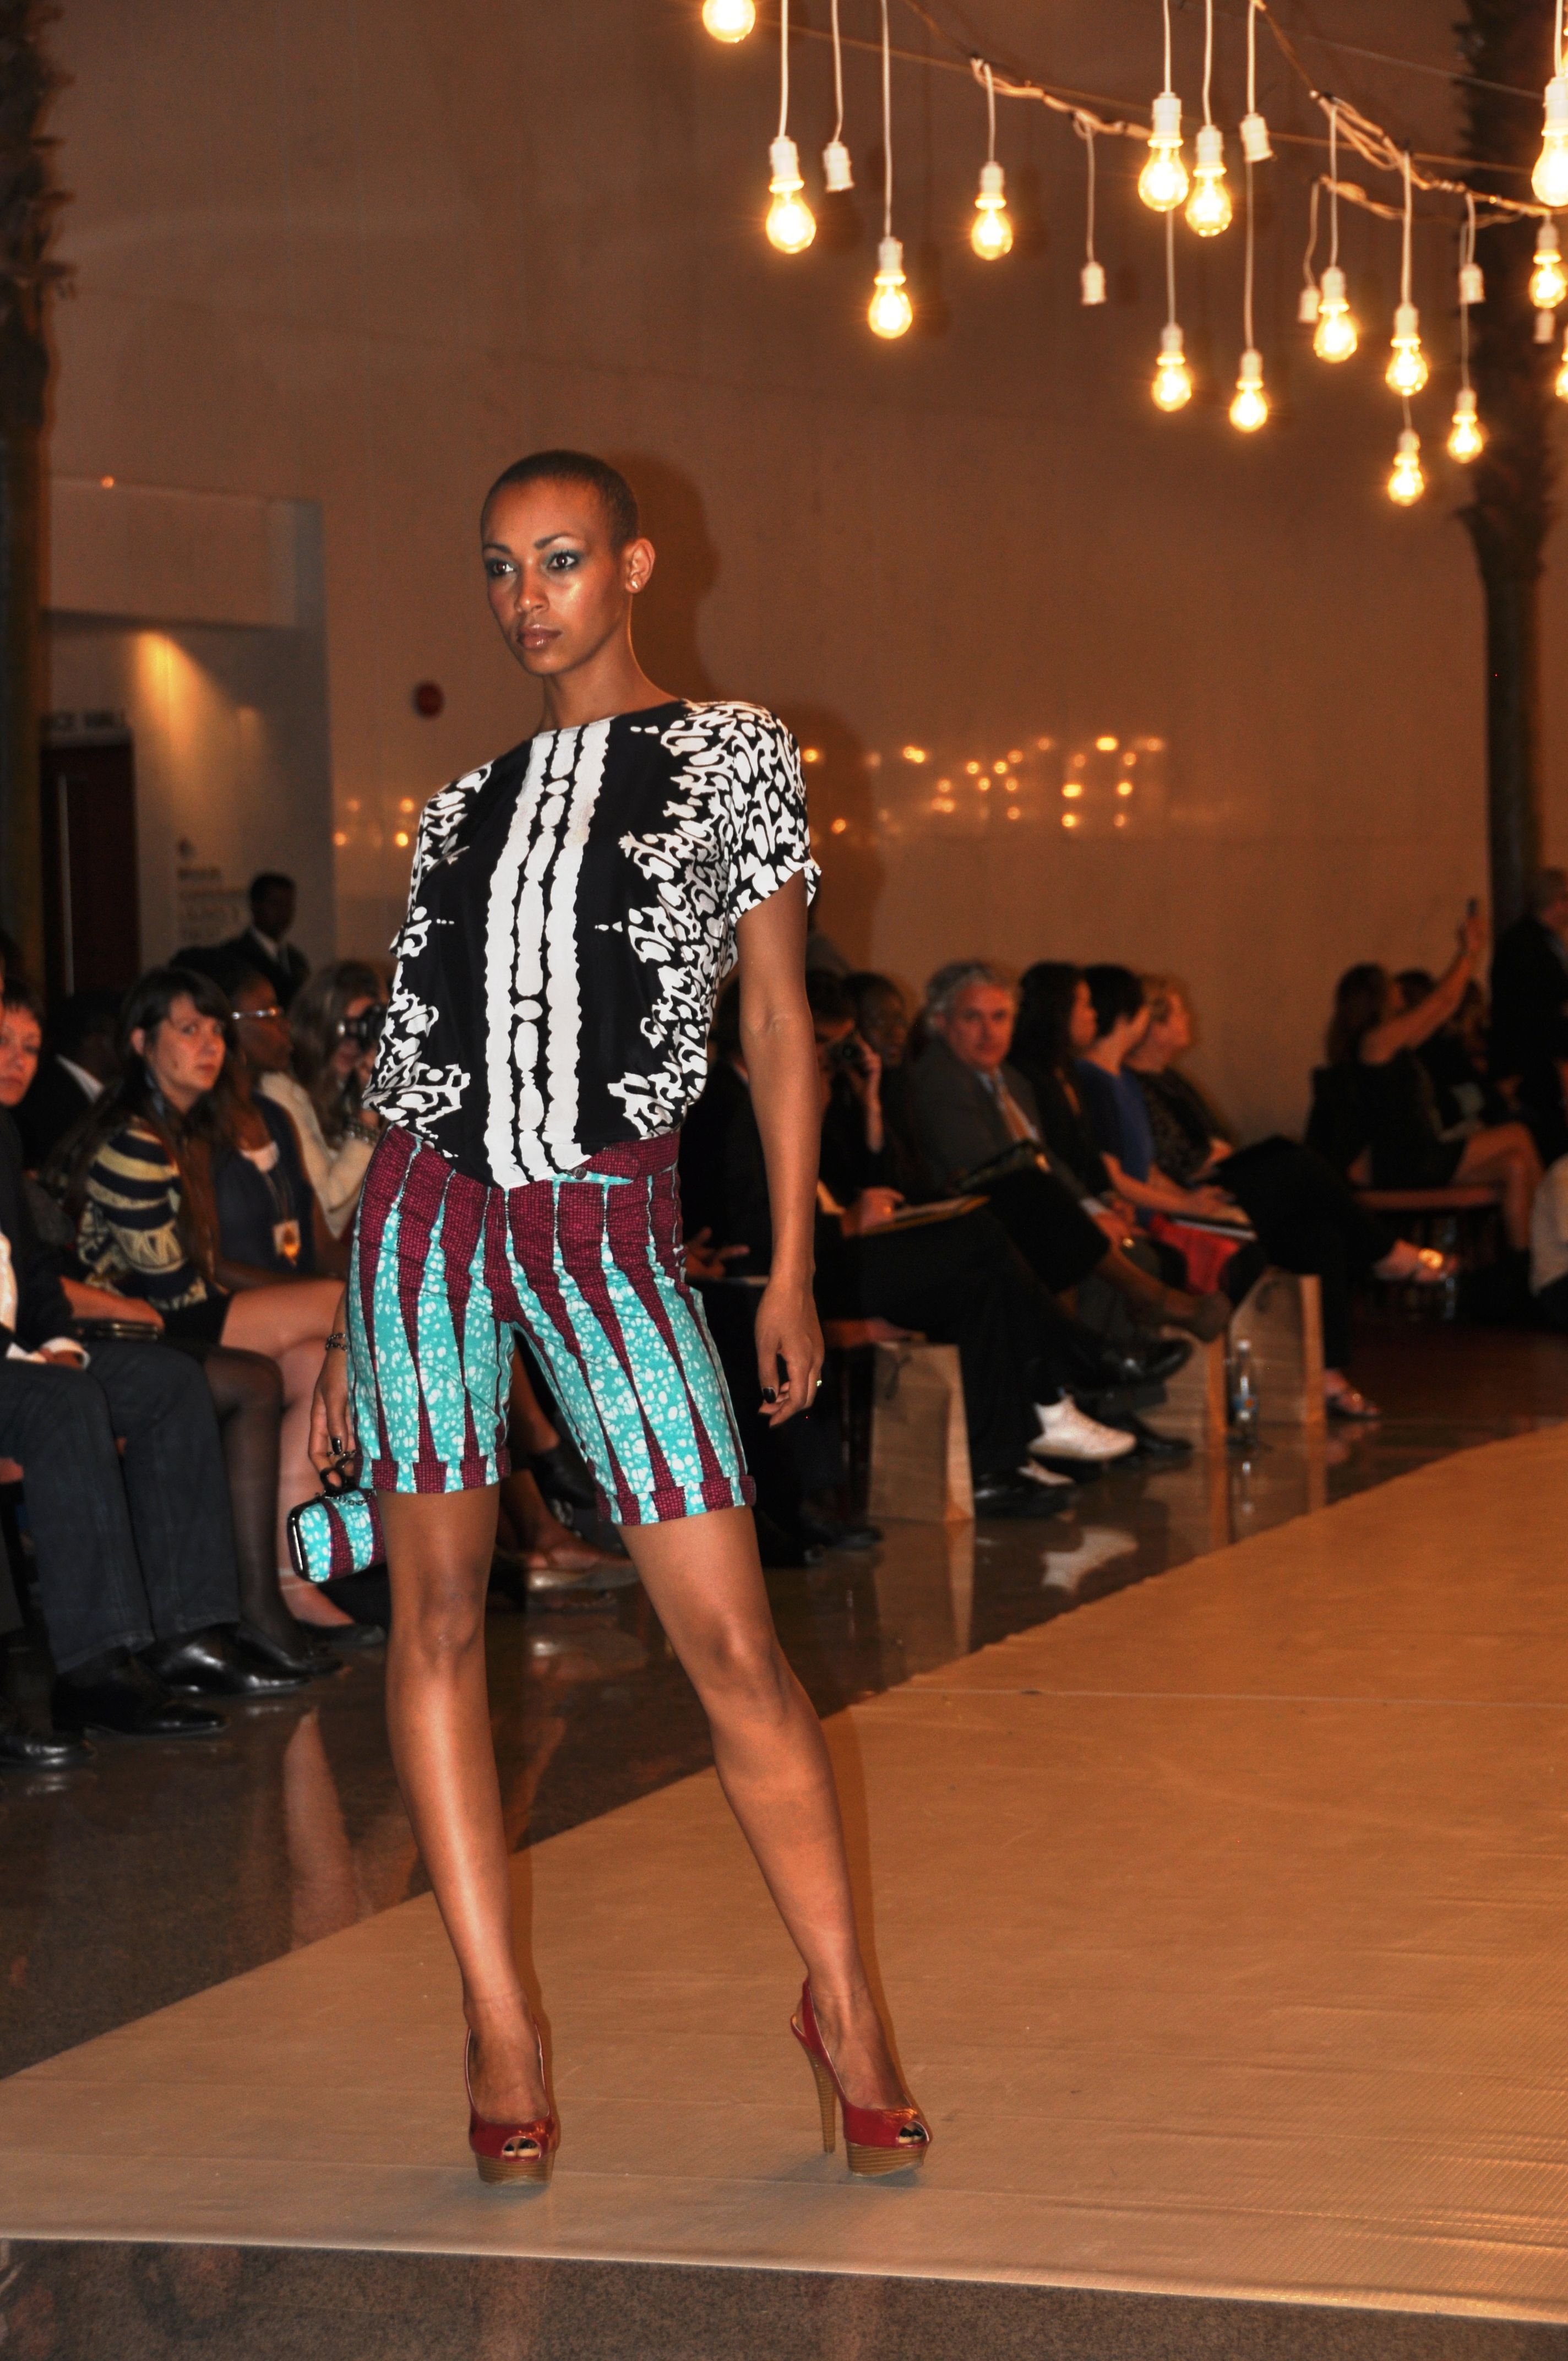 Adiree Partners With The Usaid To Launch African Fashion Designers In The United States New York Htt Africa Fashion African Fashion African Fashion Designers